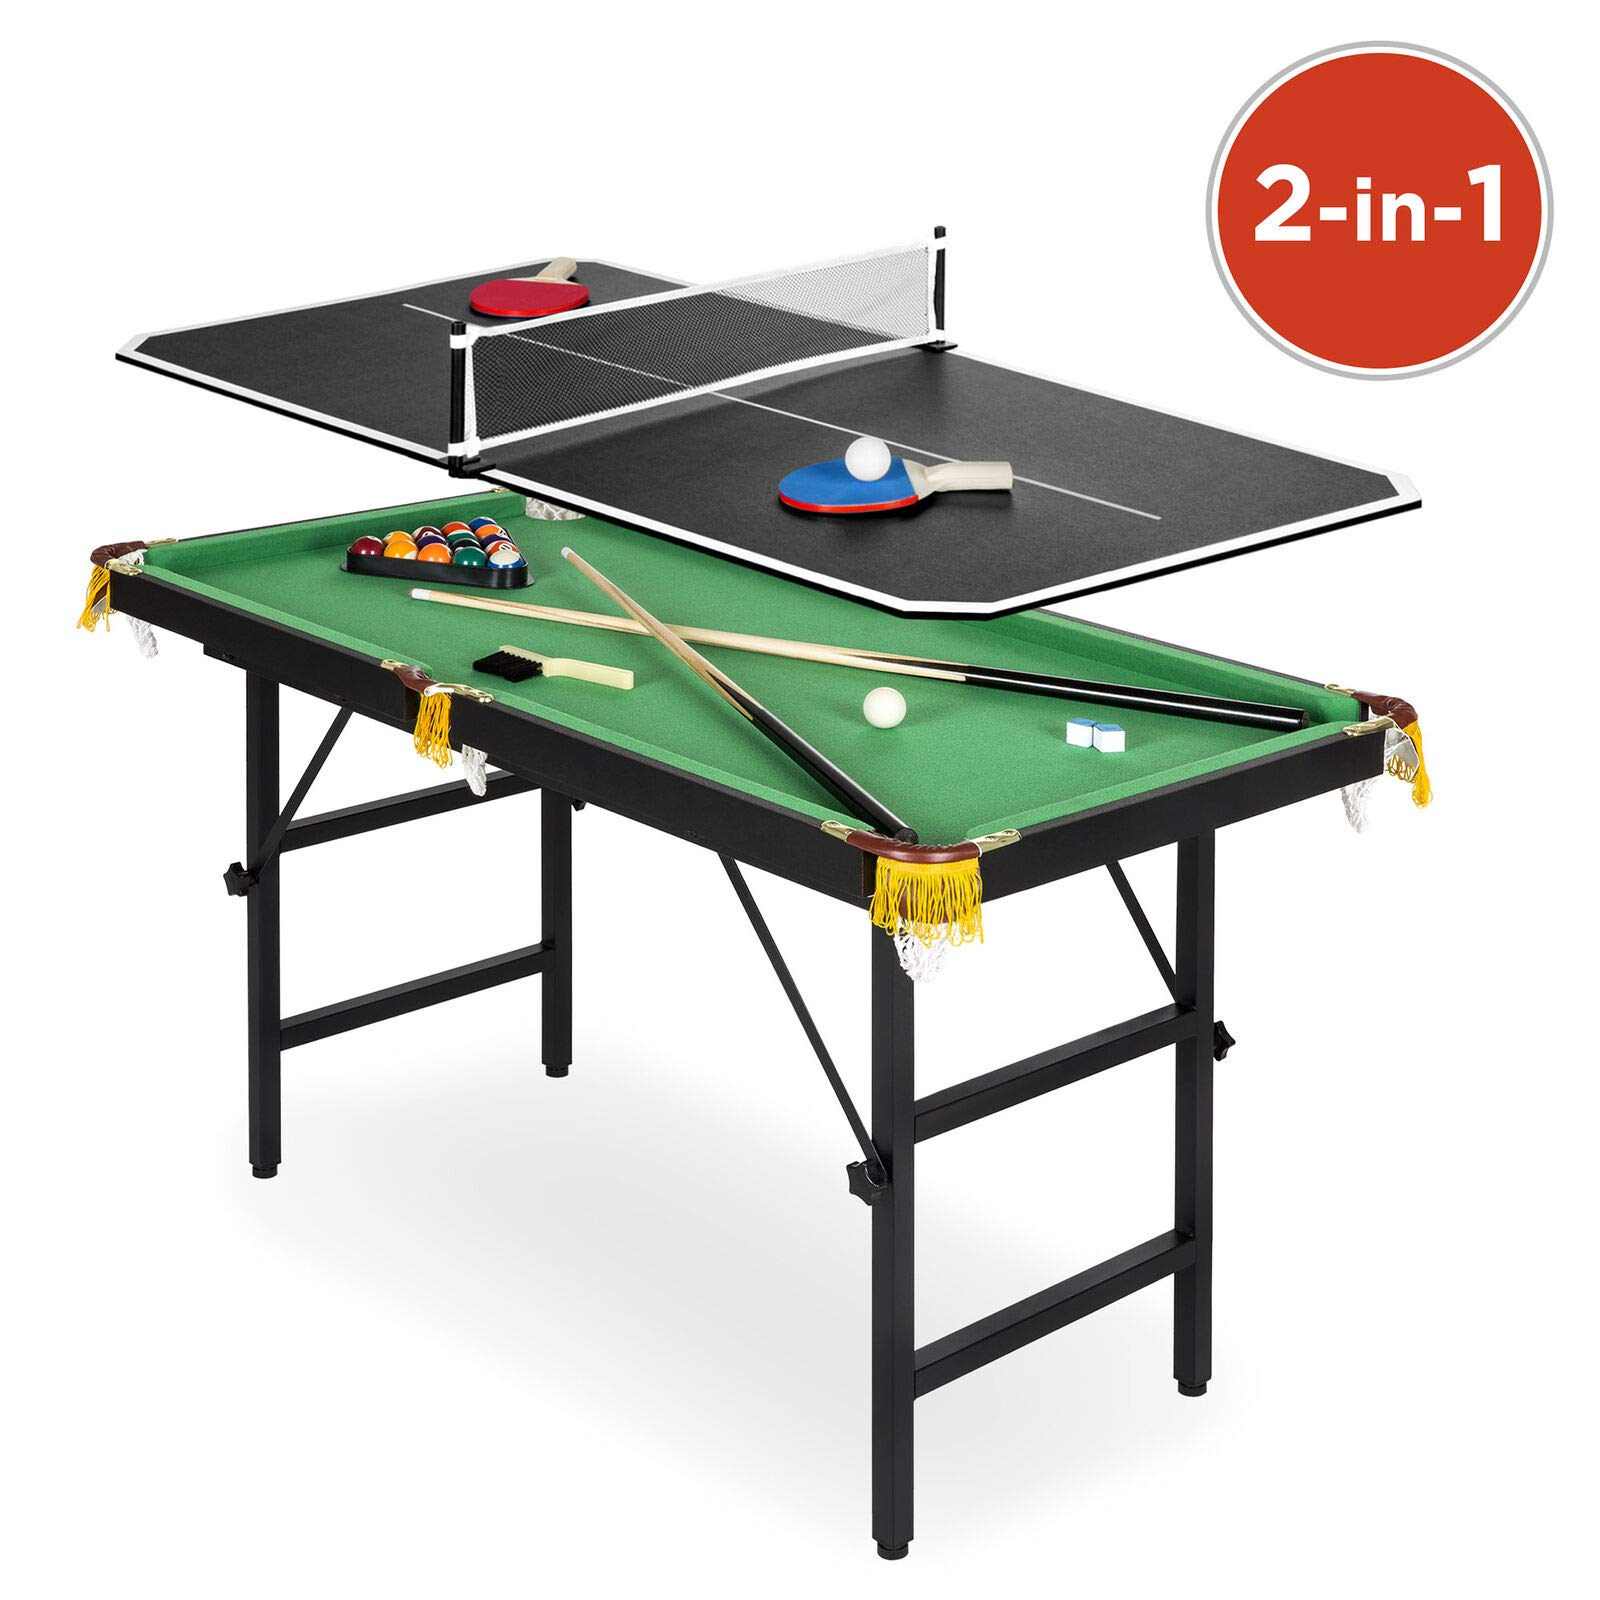 2-in-1 Arcade Game Combination Table Set Surface for Table Tennis and Billiards Pool Combo with Foldable Legs Perfect for Parties and Family Gatherings Ideal for Kids Children and Adult Alike